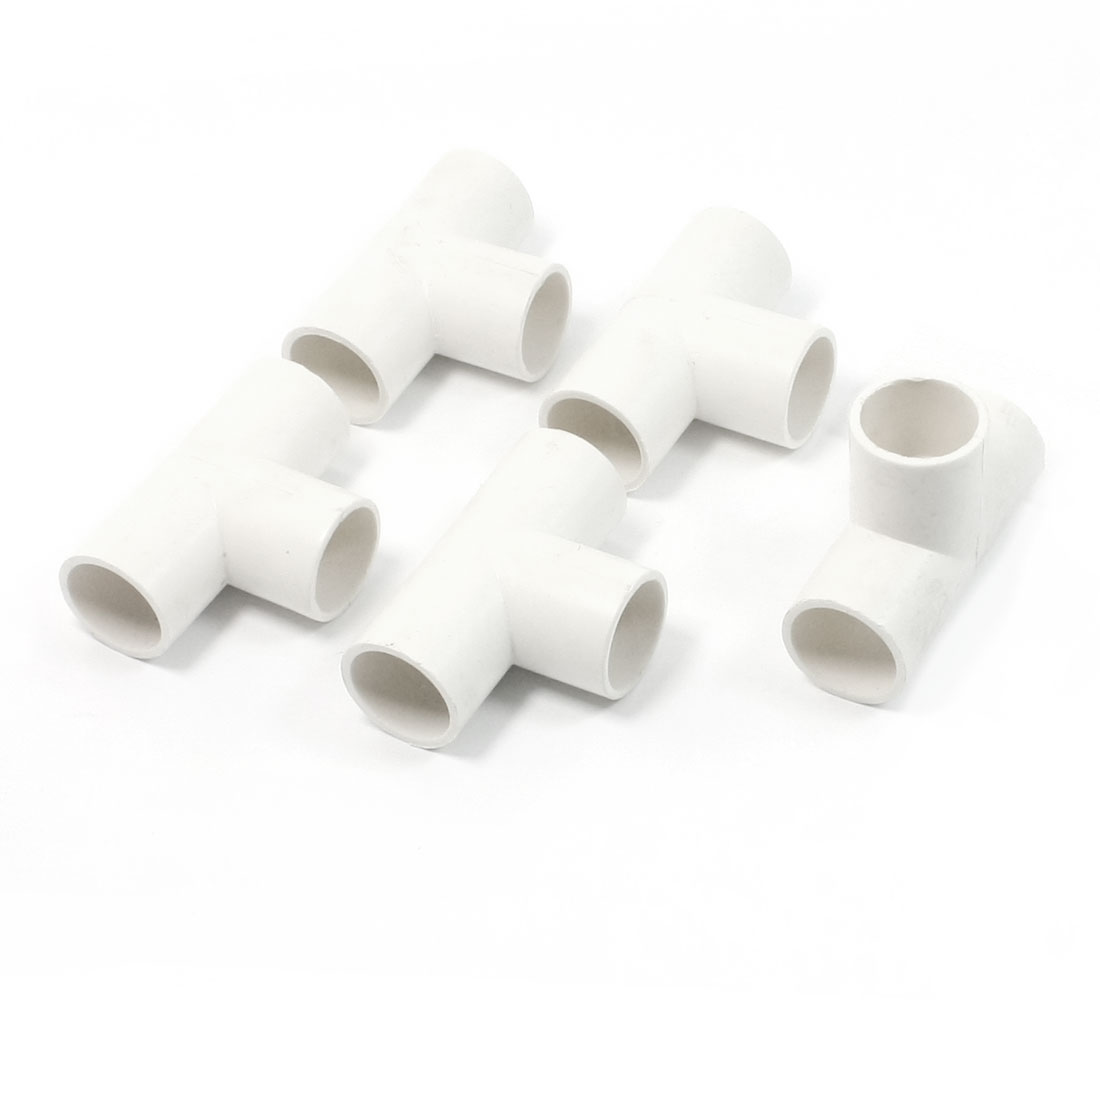 5 Pcs 20mm Hole 3 Ways White PVC Pipe Tee Shaped Connectors Fittings